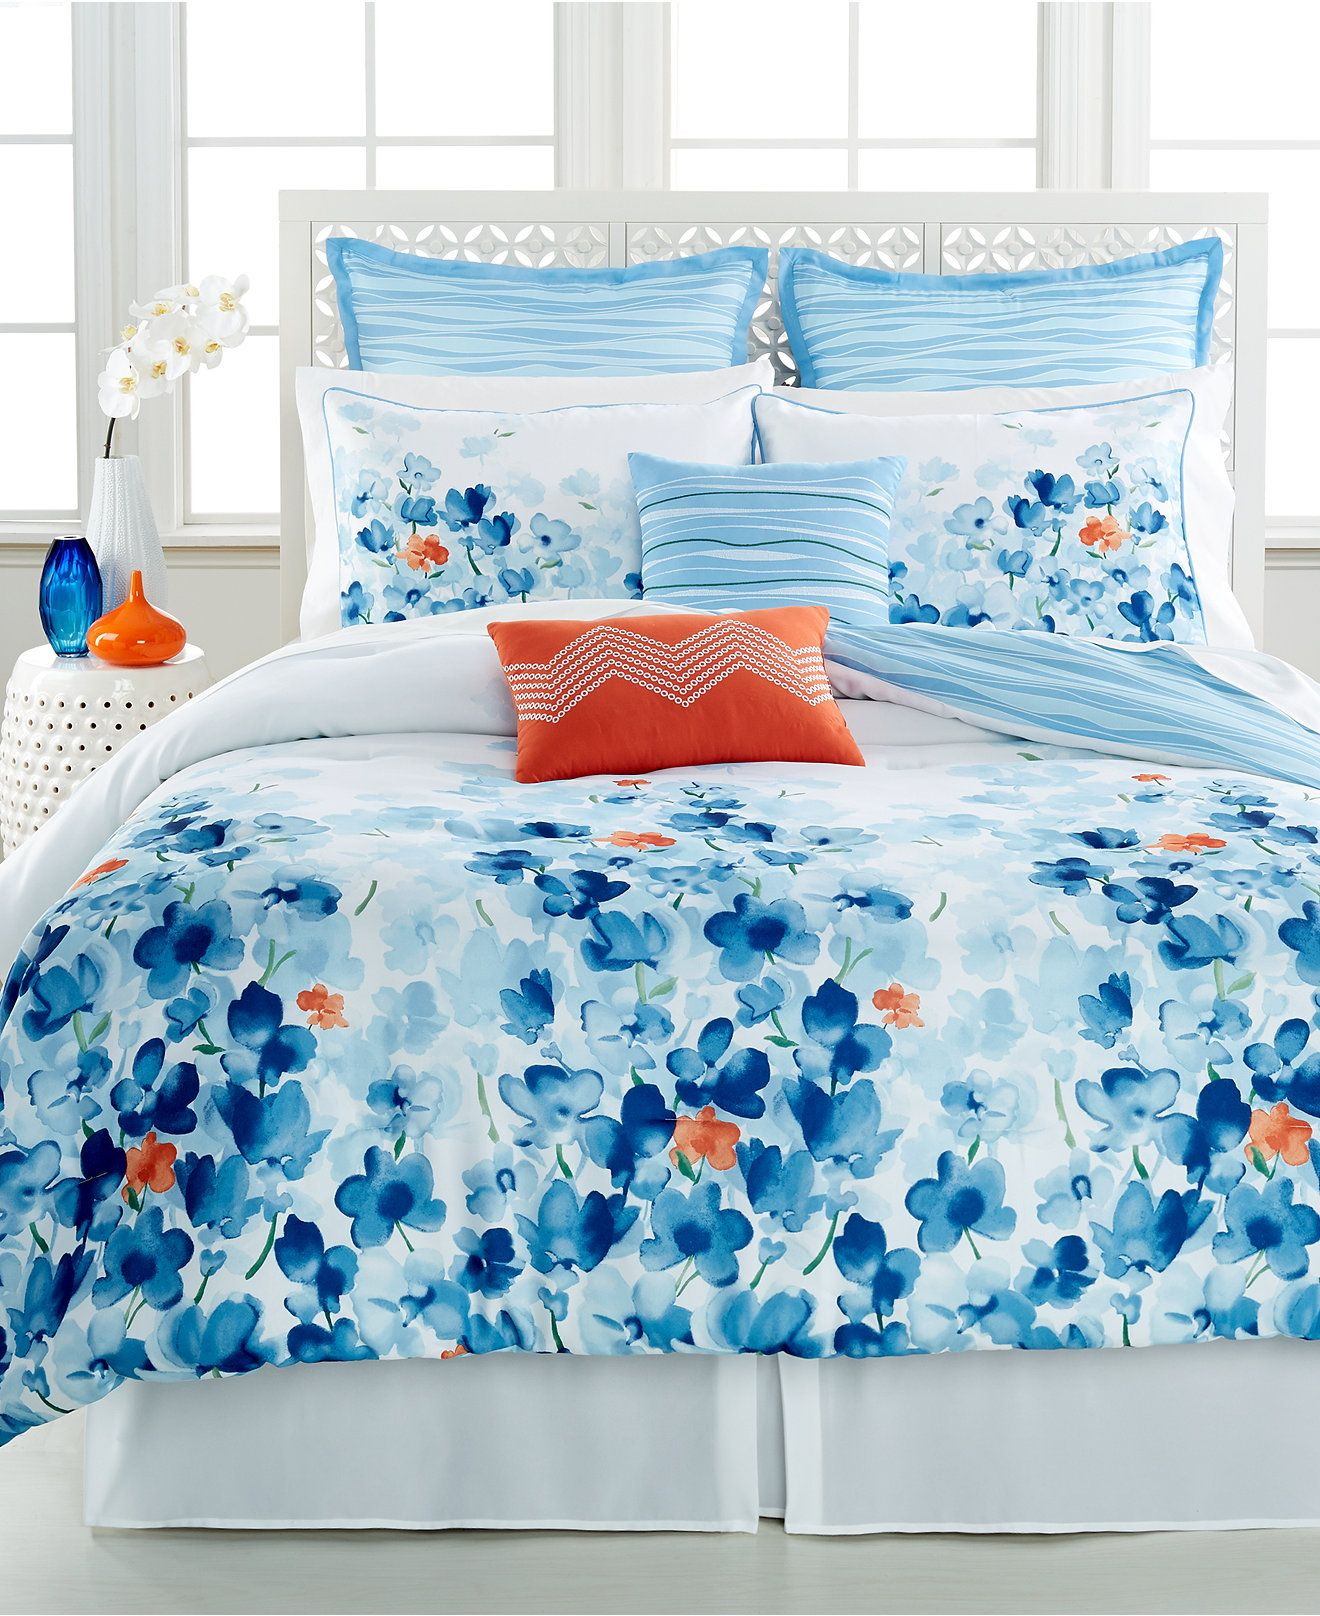 ready to give your bedroom the perfect redesign for spring? it's